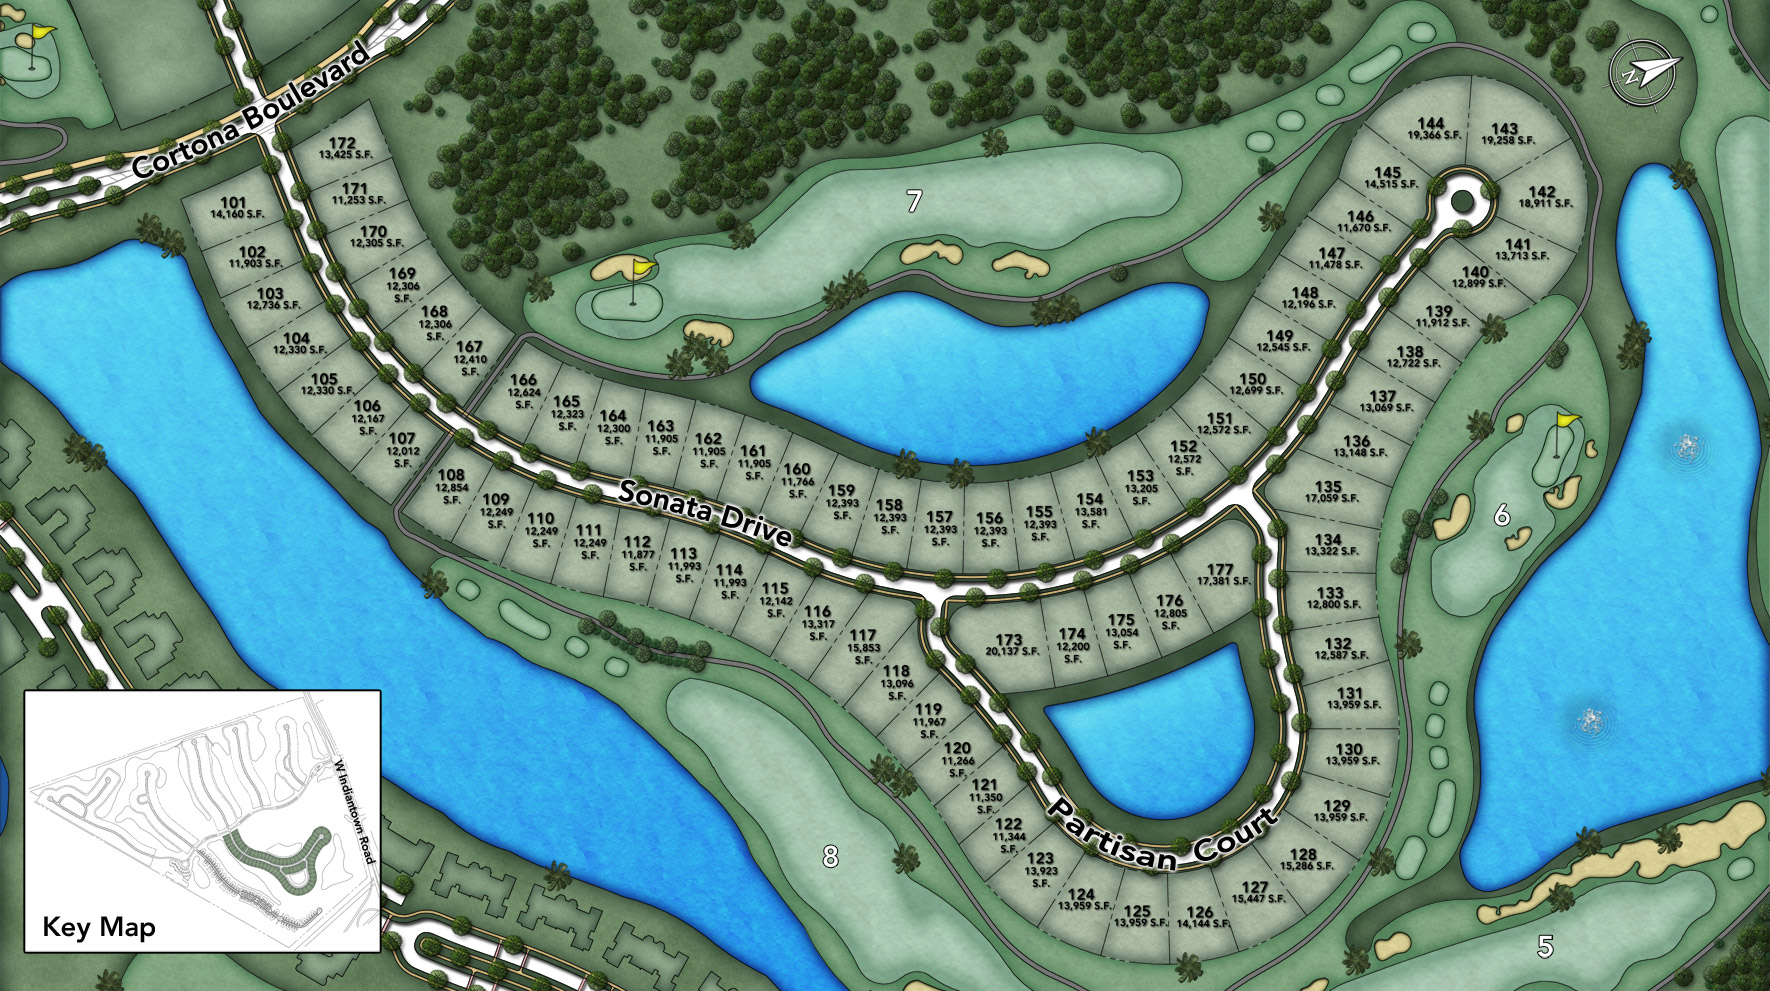 Jupiter County Club - Heritage Collection - Sonata Site Plan